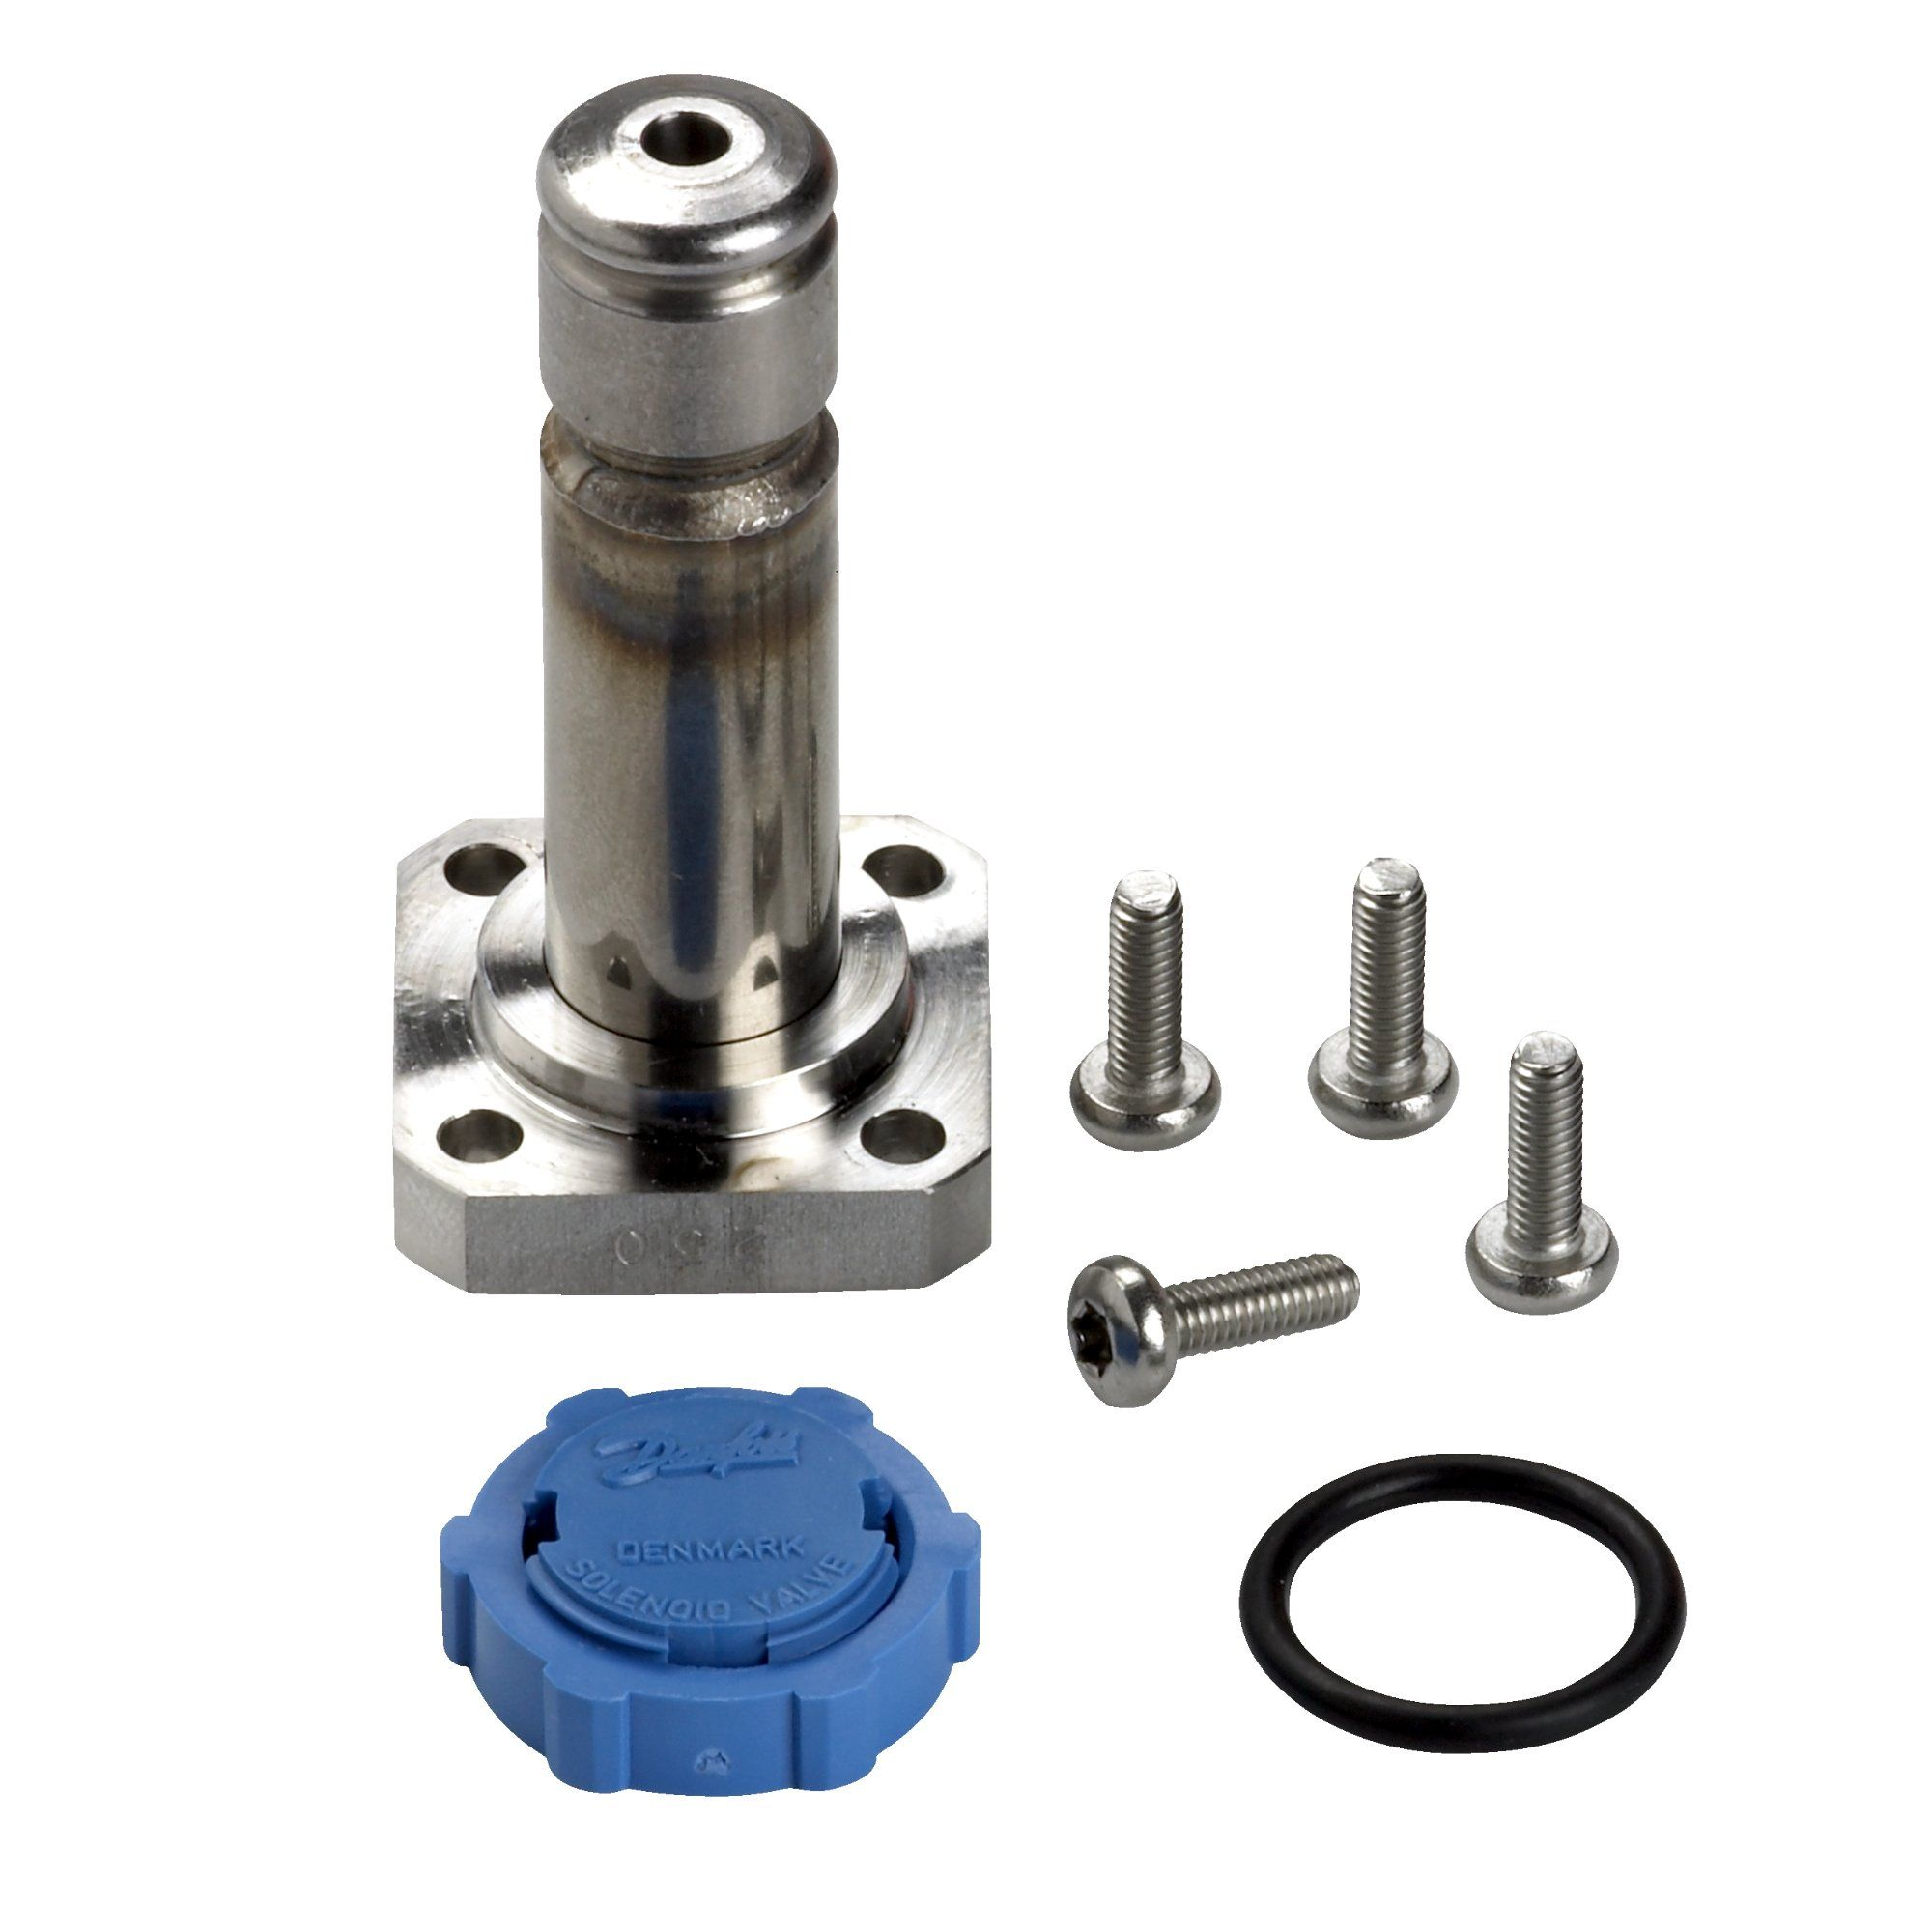 042U1010 FKM SPARE KIT, ISOLATING DIAPHRAGM